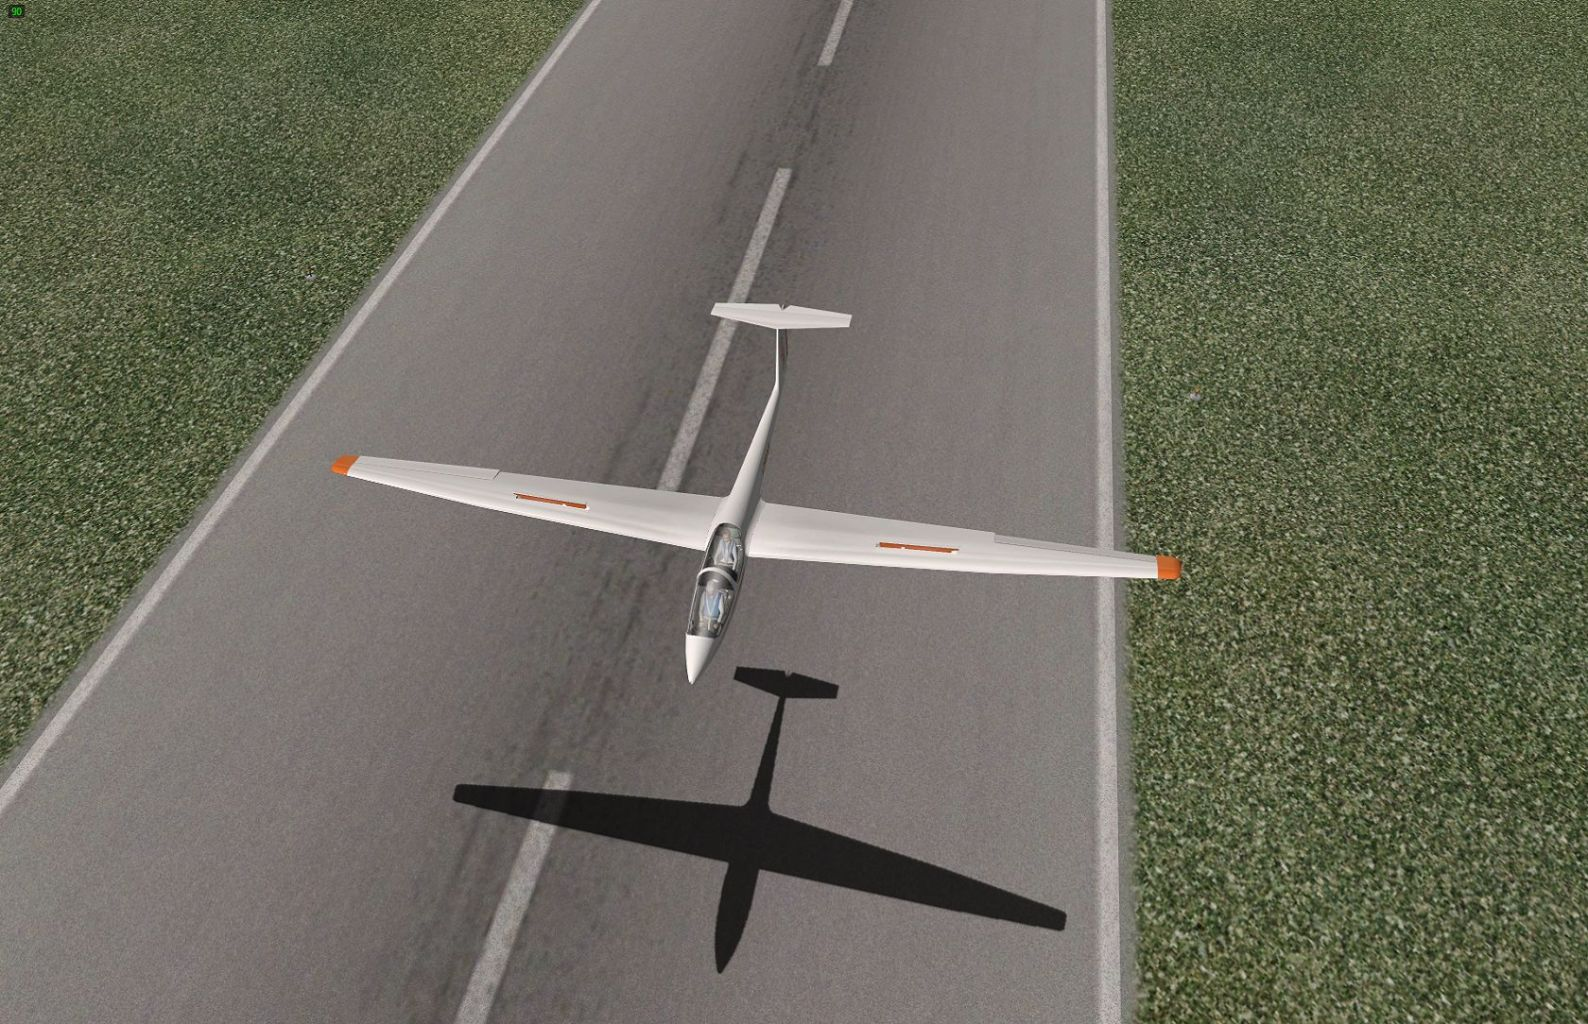 ASK21 Glider. Top view Of landing At FAPM, Natal In South Africa. X Plane 10 with No Add On.